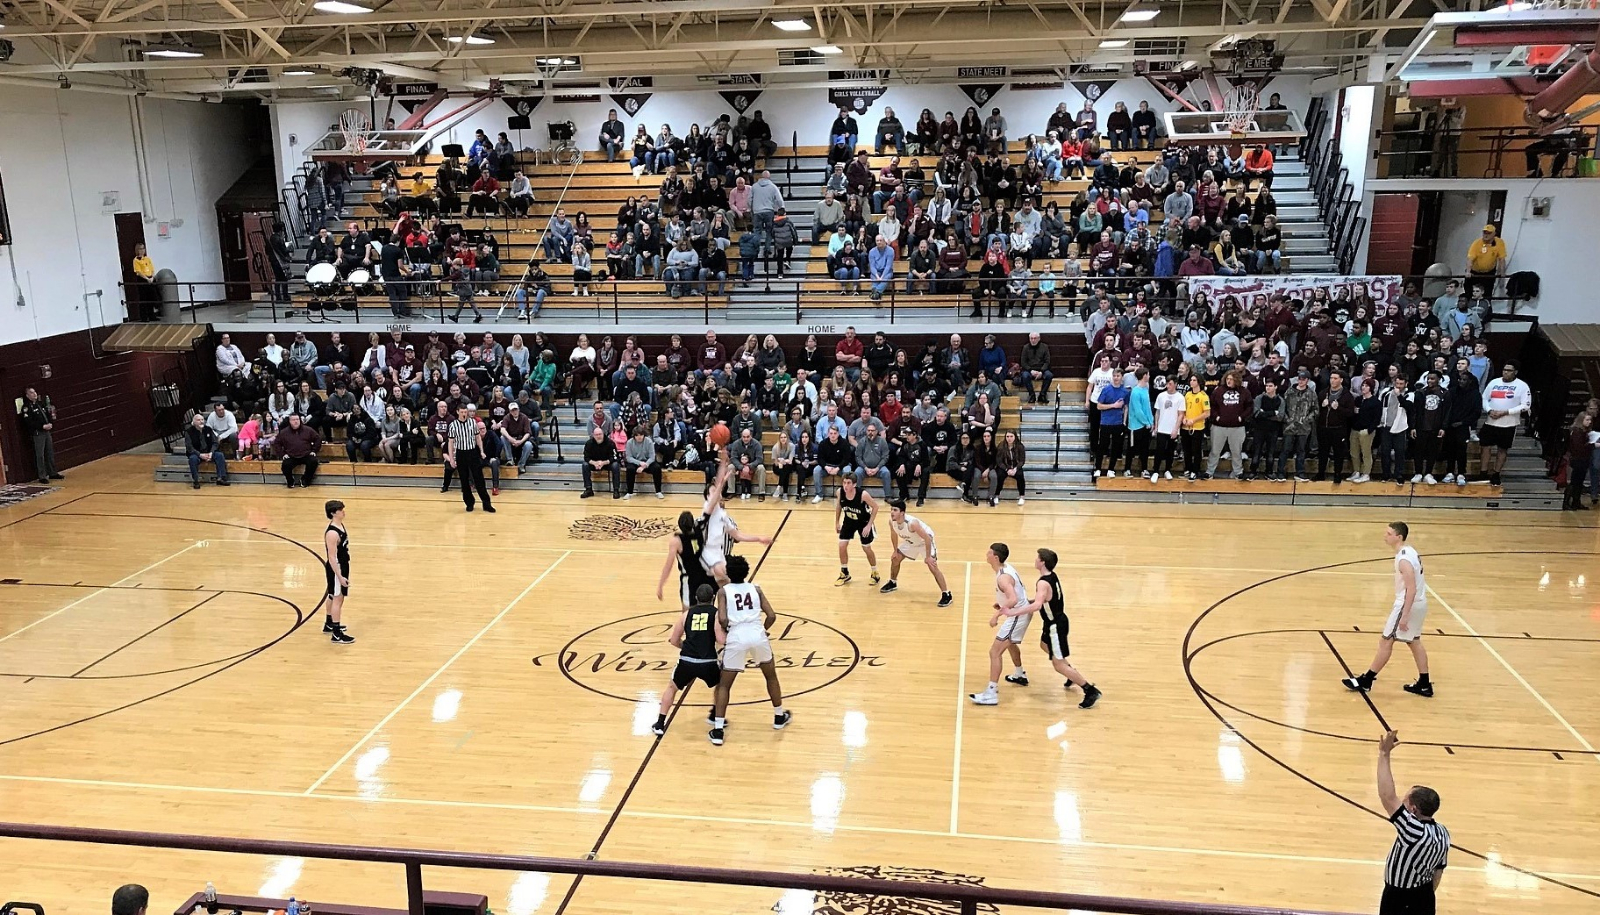 Hoop Scotties fall 75-48 to Canal Winchester in D-I, boys basketball post season opener; finish season at 15-8